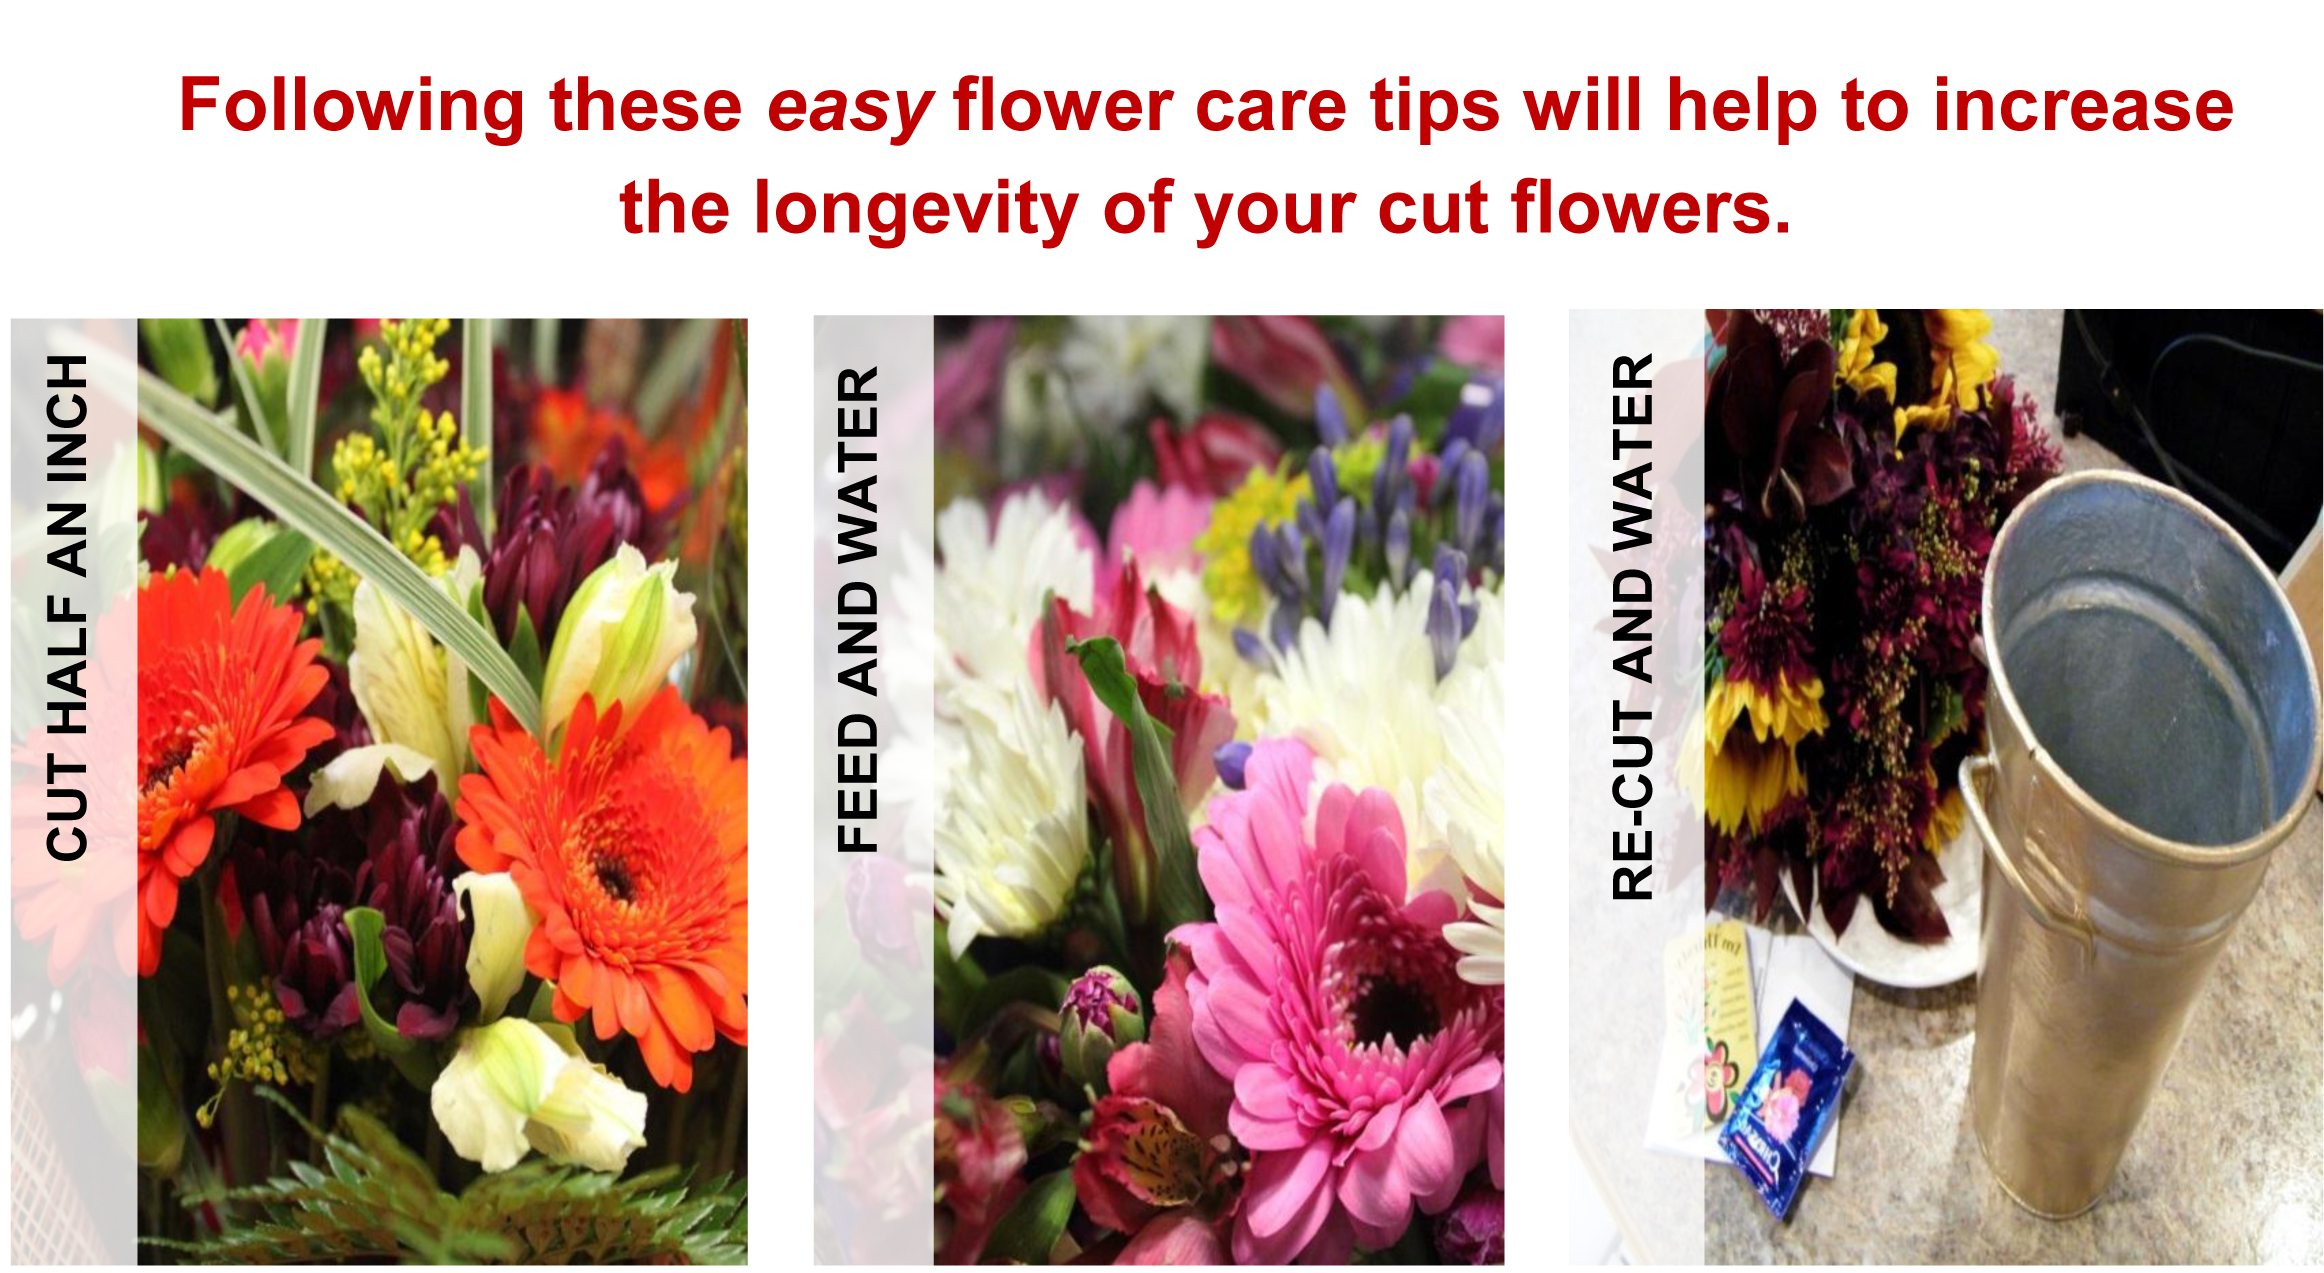 Floral care make scents flowers certain varieties of cut flowers last longer than others carnations for example can remain vibrant for long periods roses have a shorter vase life reviewsmspy